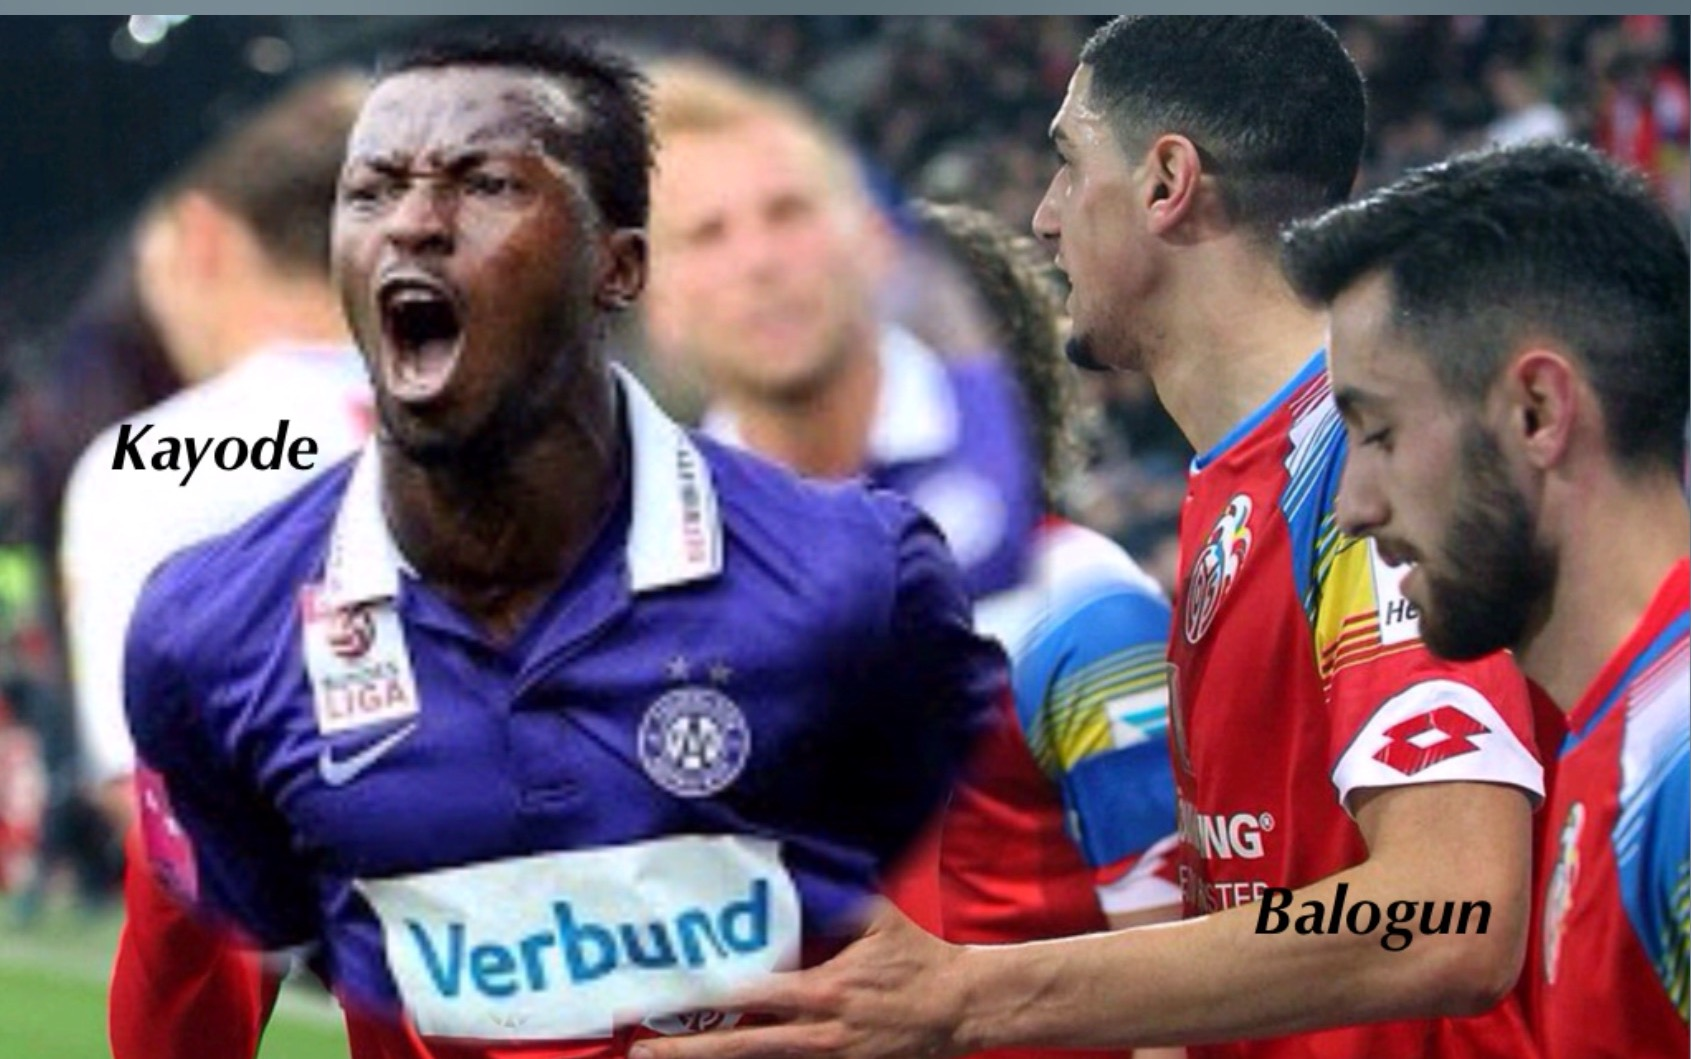 Kayode On Target For Austria Wien;  Balogun, Enyeama, Ogbeche In Action